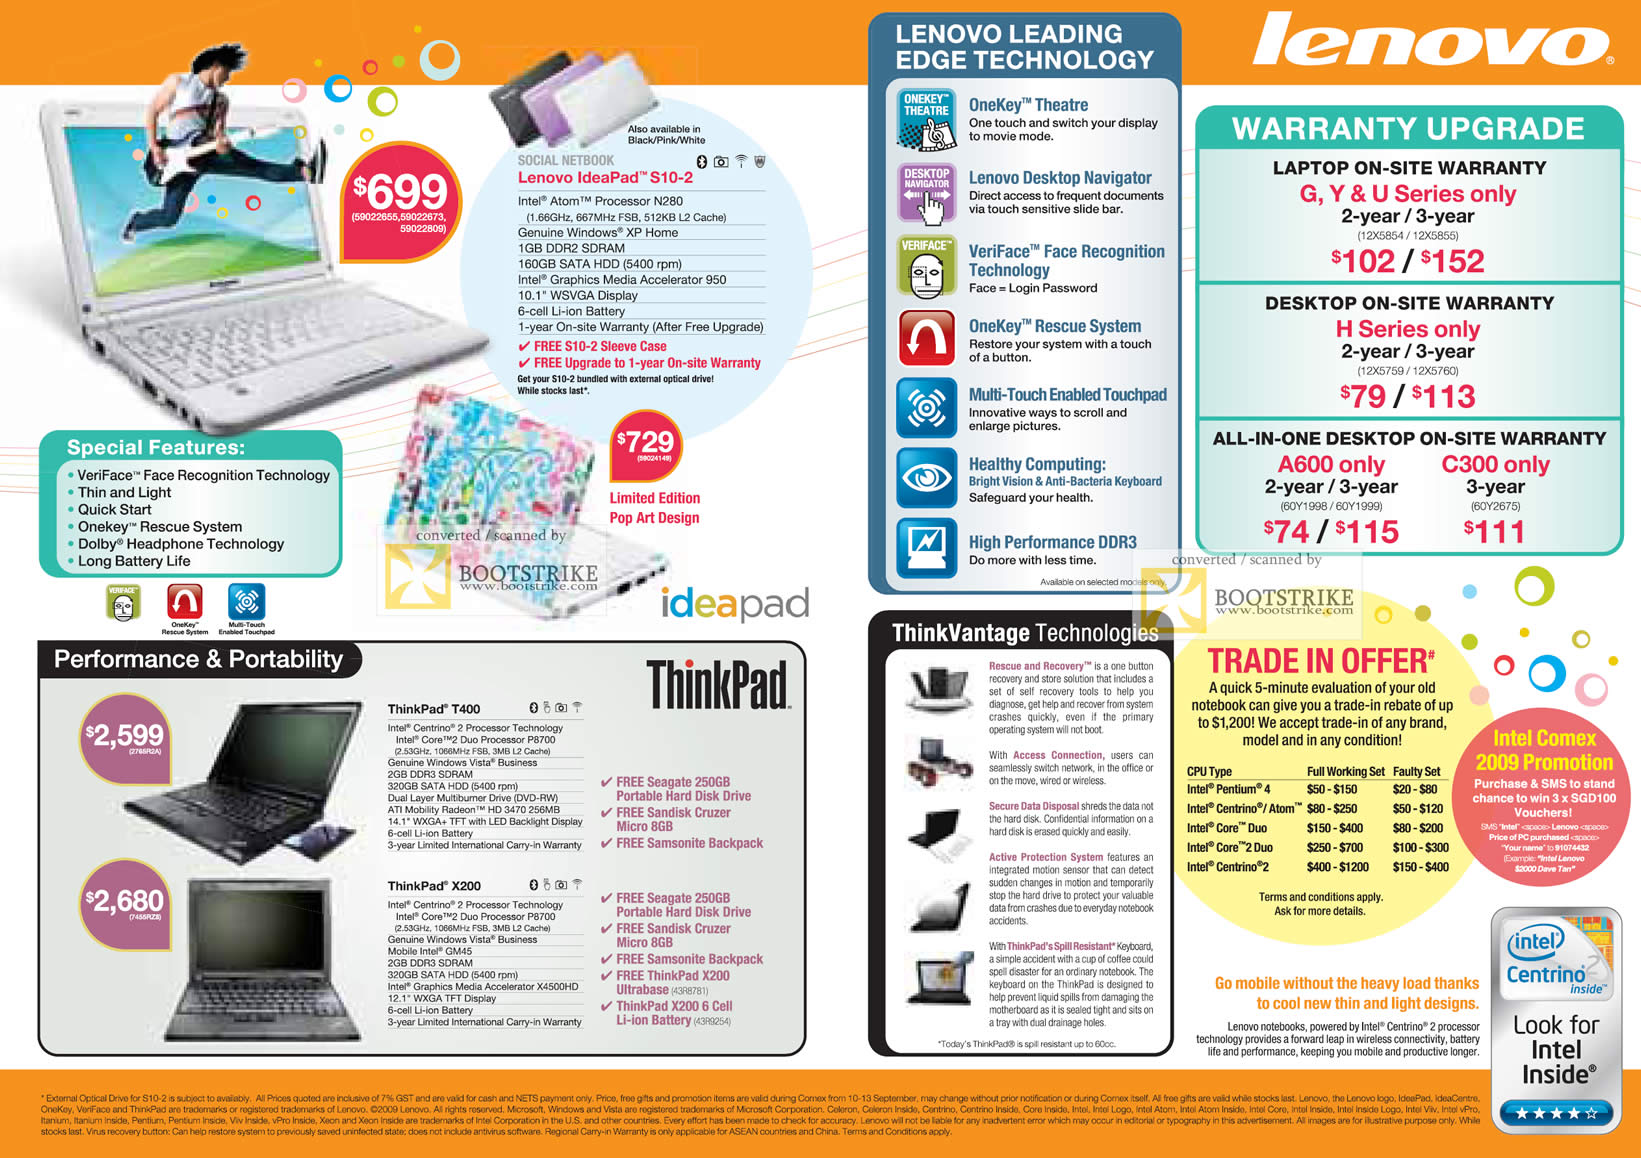 Comex 2009 price list image brochure of Lenovo Netbook Ideapad S10-2 IBM ThinkPad T400 X200 Trade-In Warranty